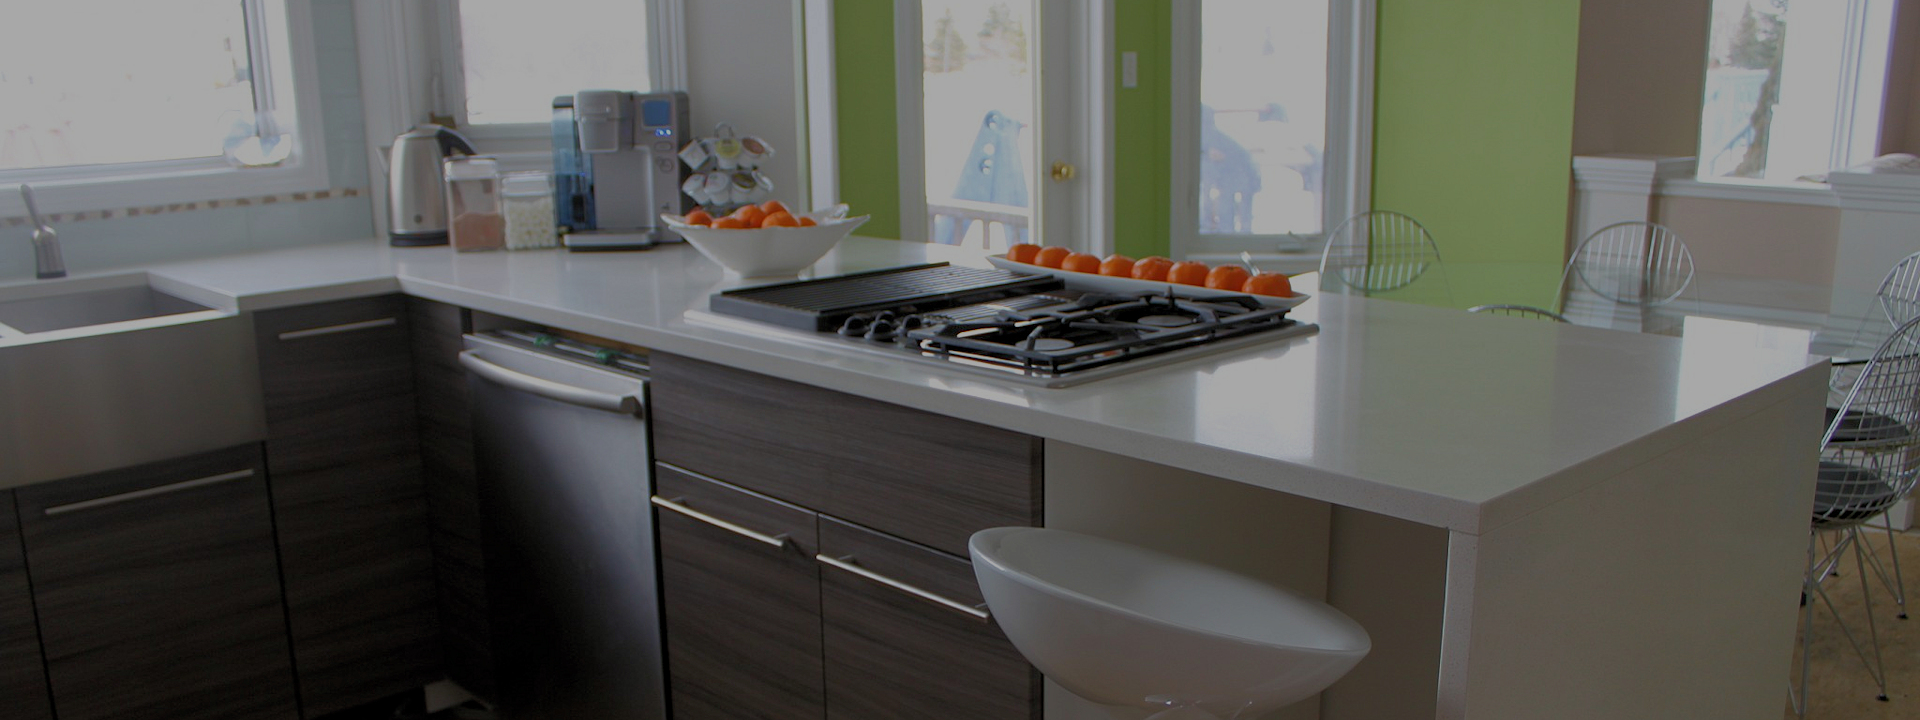 the One Stop Shop for your Kitchen needs